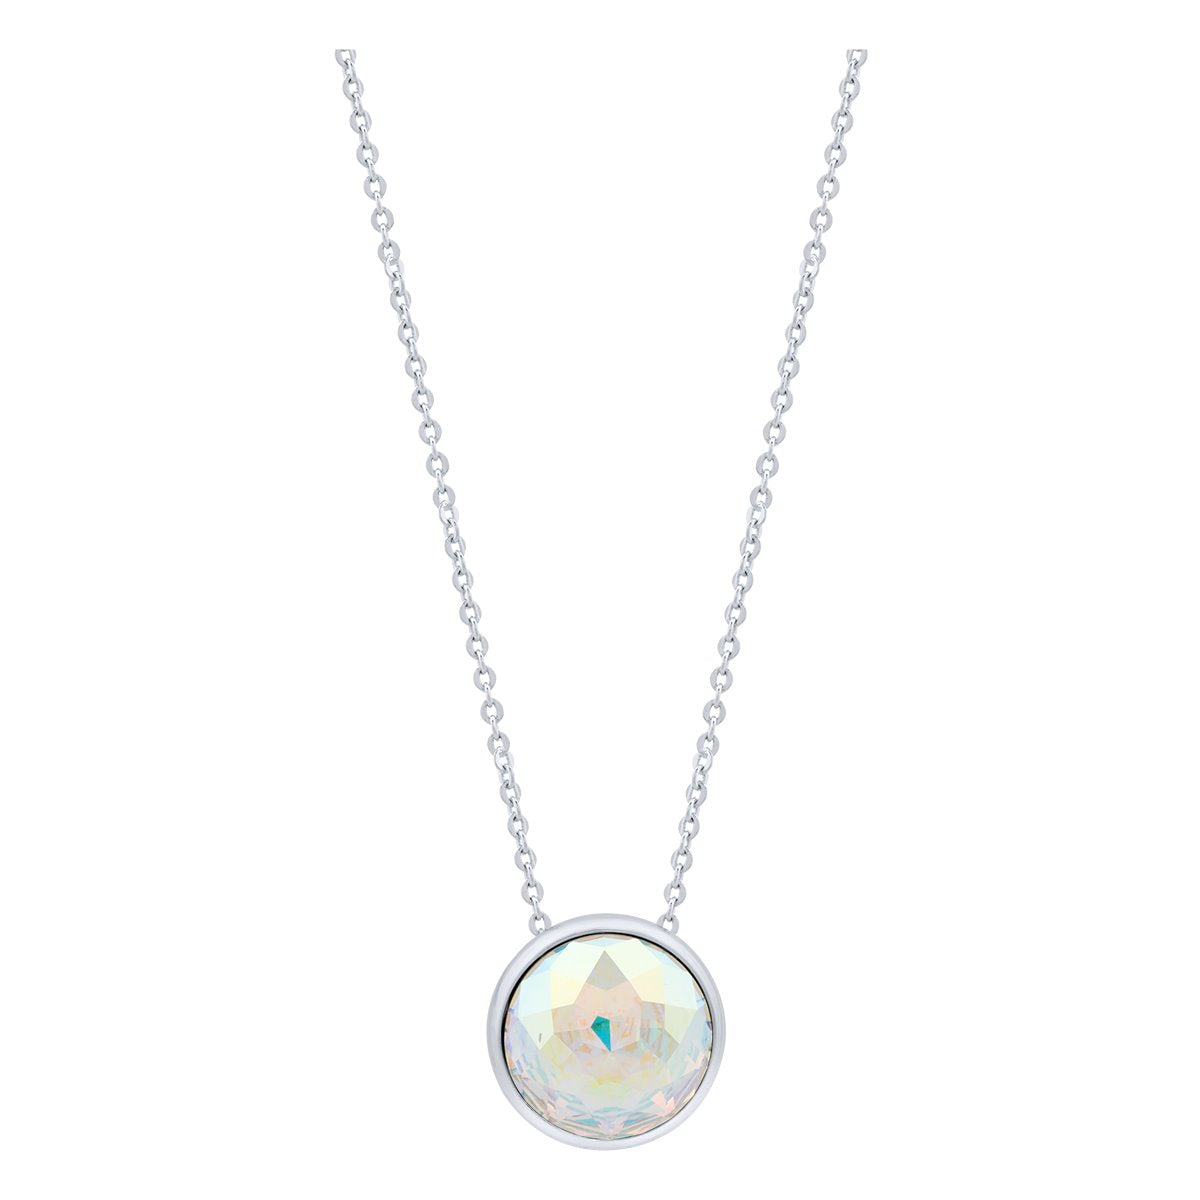 Elysees Necklace Silver Aurora Borealis JOY OF SPARKLE FOREVER CRYSTALS